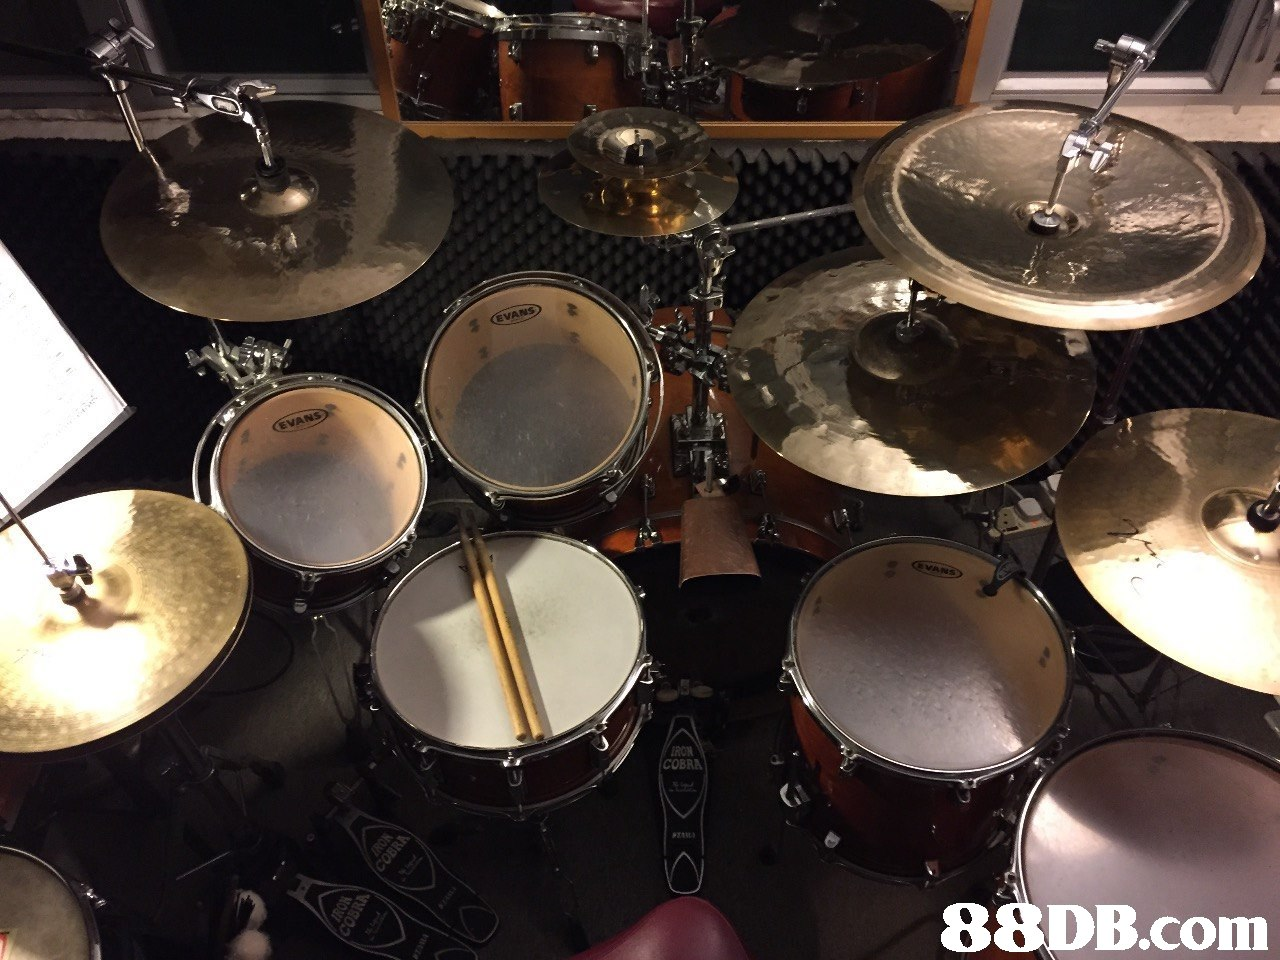 i争 ROR COBR 80DB.com  drum,drums,cymbal,musical instrument,percussion